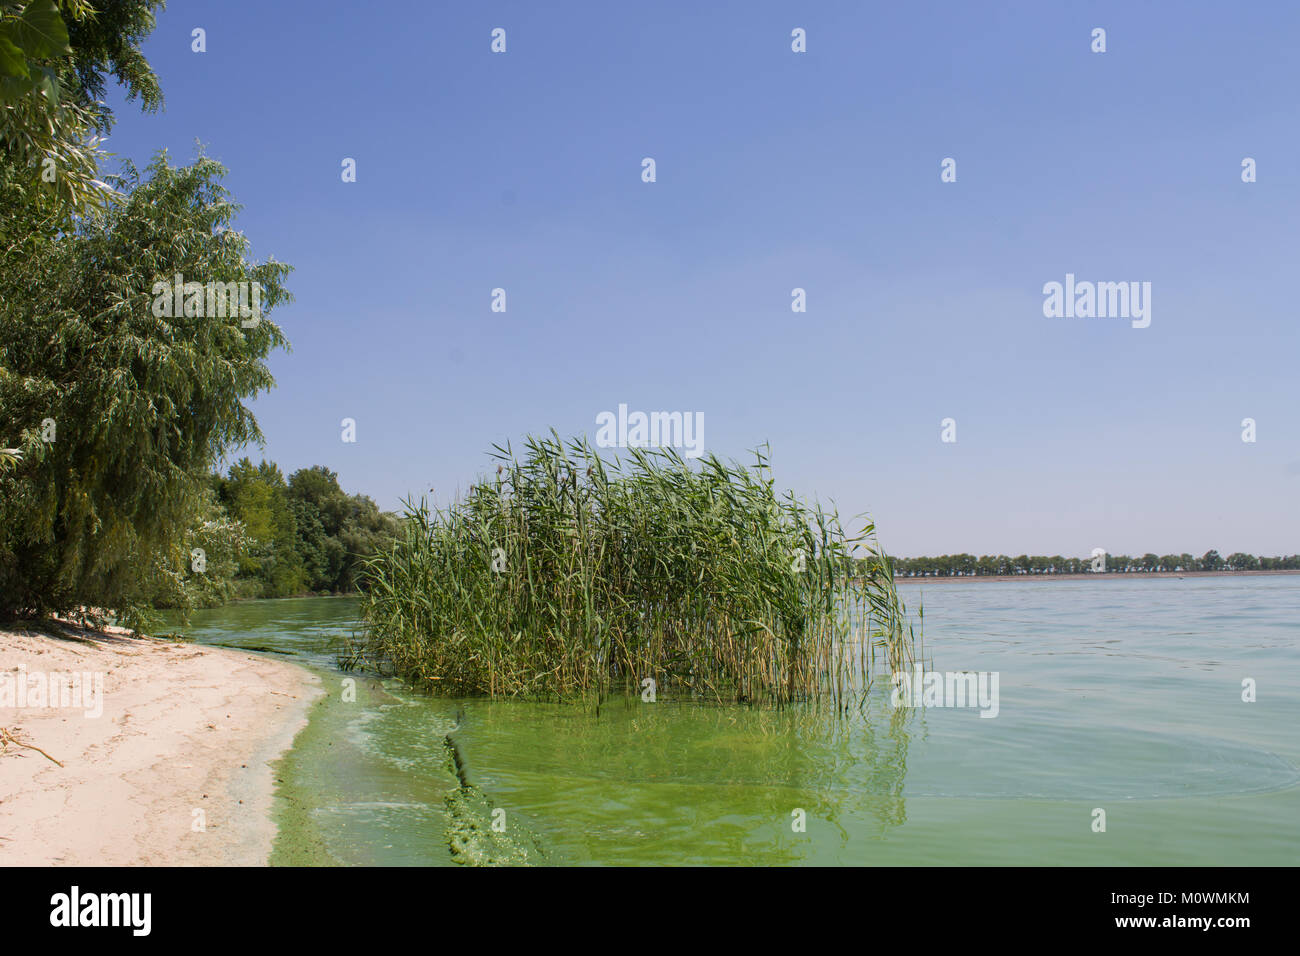 Water pollution. ecology. blooming pond.  algal blooms, green  beach on the lake - Stock Image